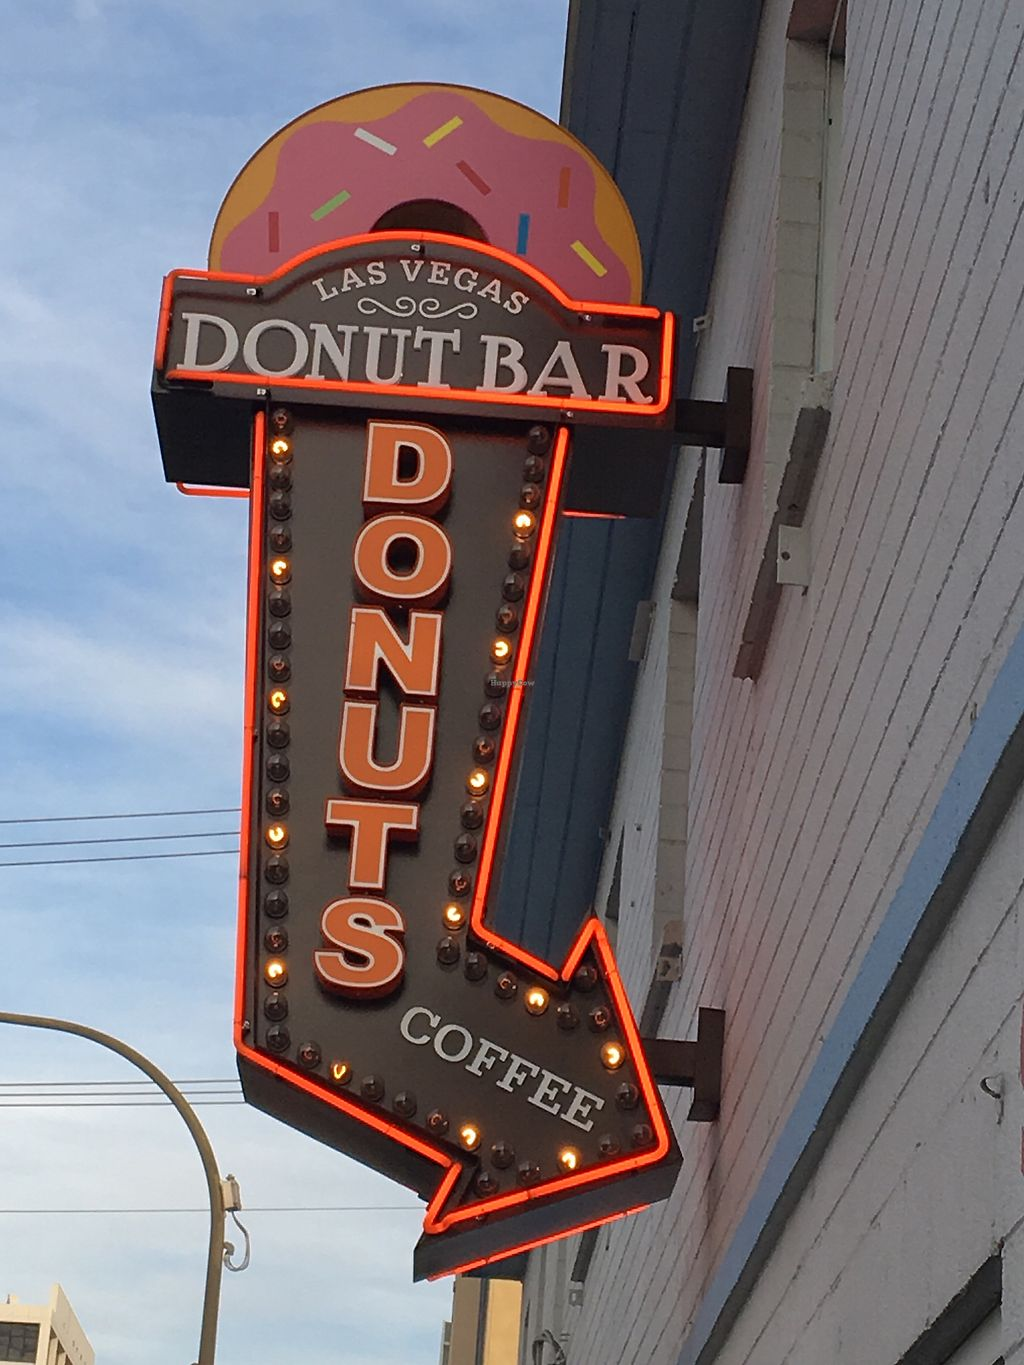 """Photo of Donut Bar  by <a href=""""/members/profile/LeahLinJones"""">LeahLinJones</a> <br/>Las Vegas Donut Bar <br/> September 19, 2017  - <a href='/contact/abuse/image/72504/306061'>Report</a>"""